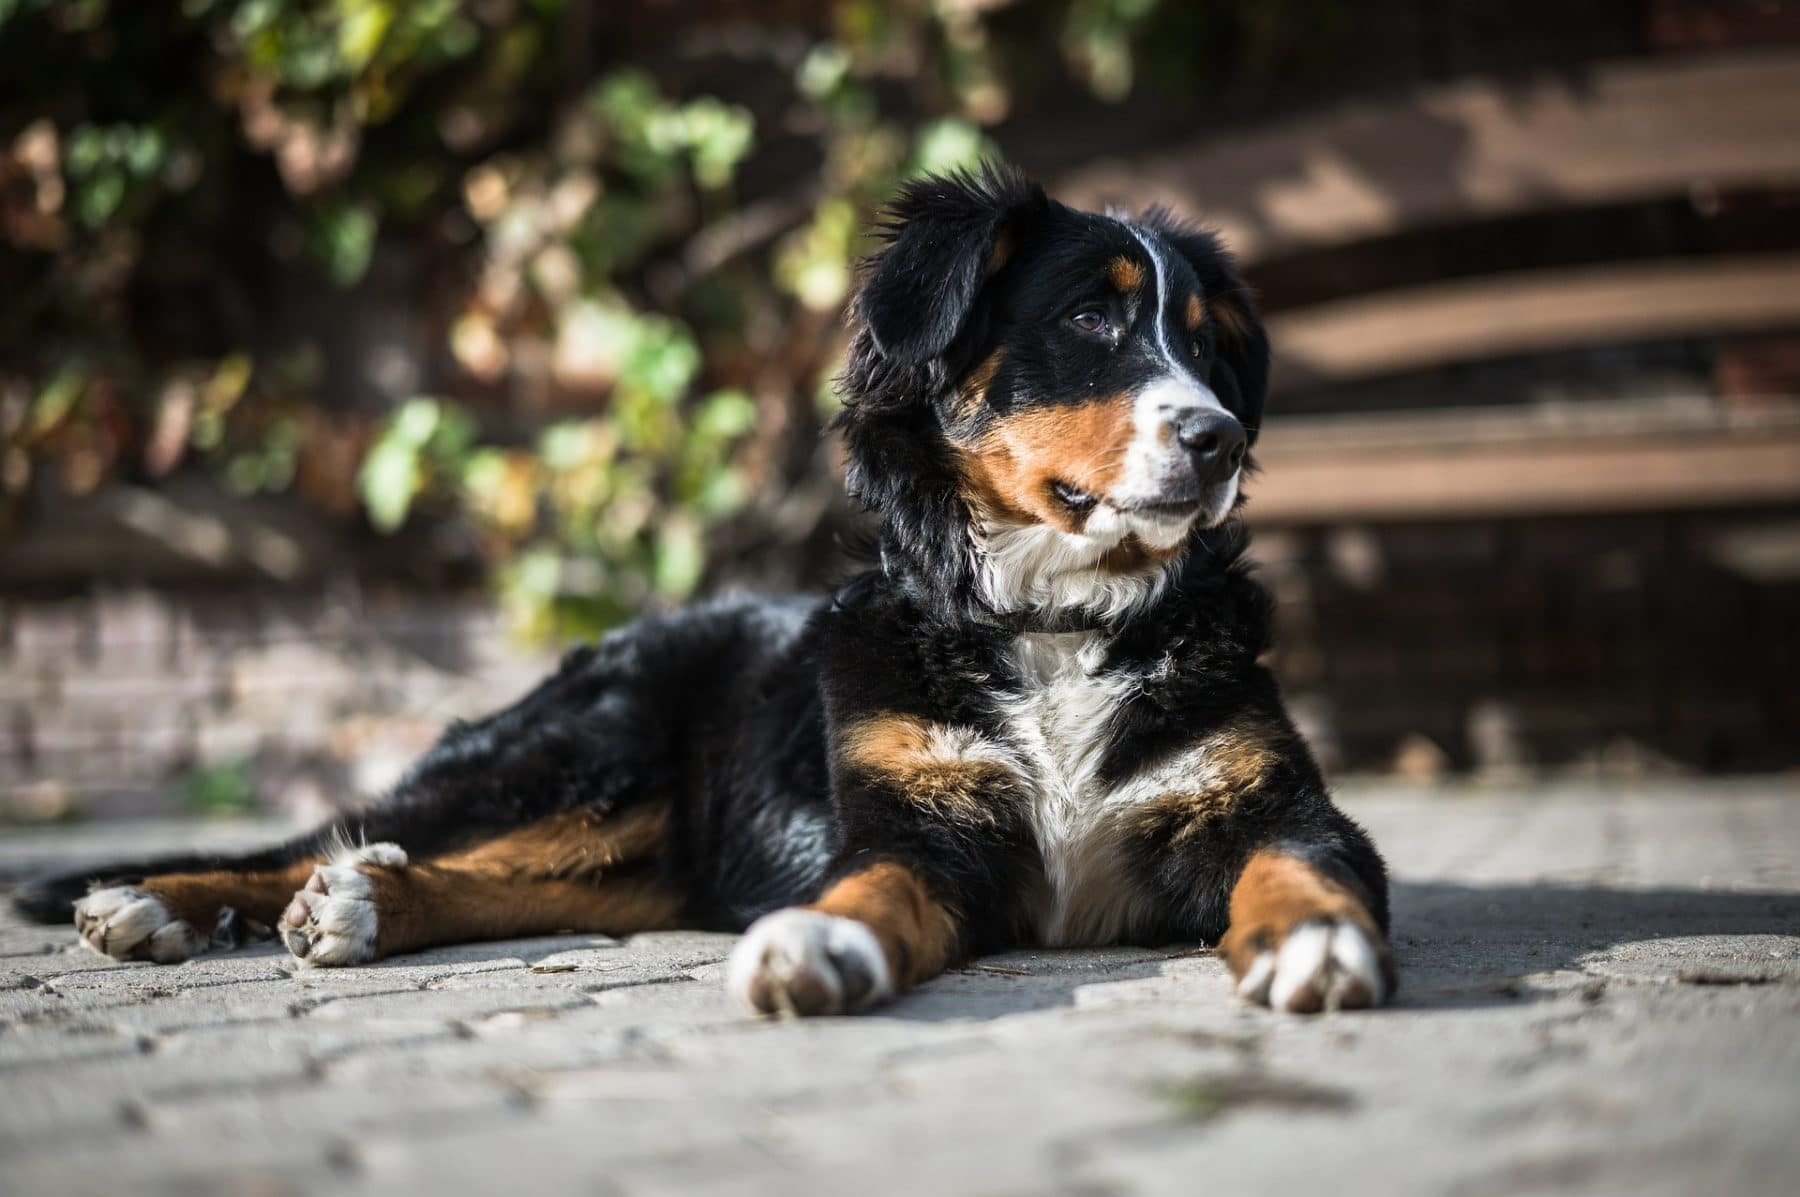 https://www.rover.com/blog/best-dog-foods-for-bernese-mountain-dogs/